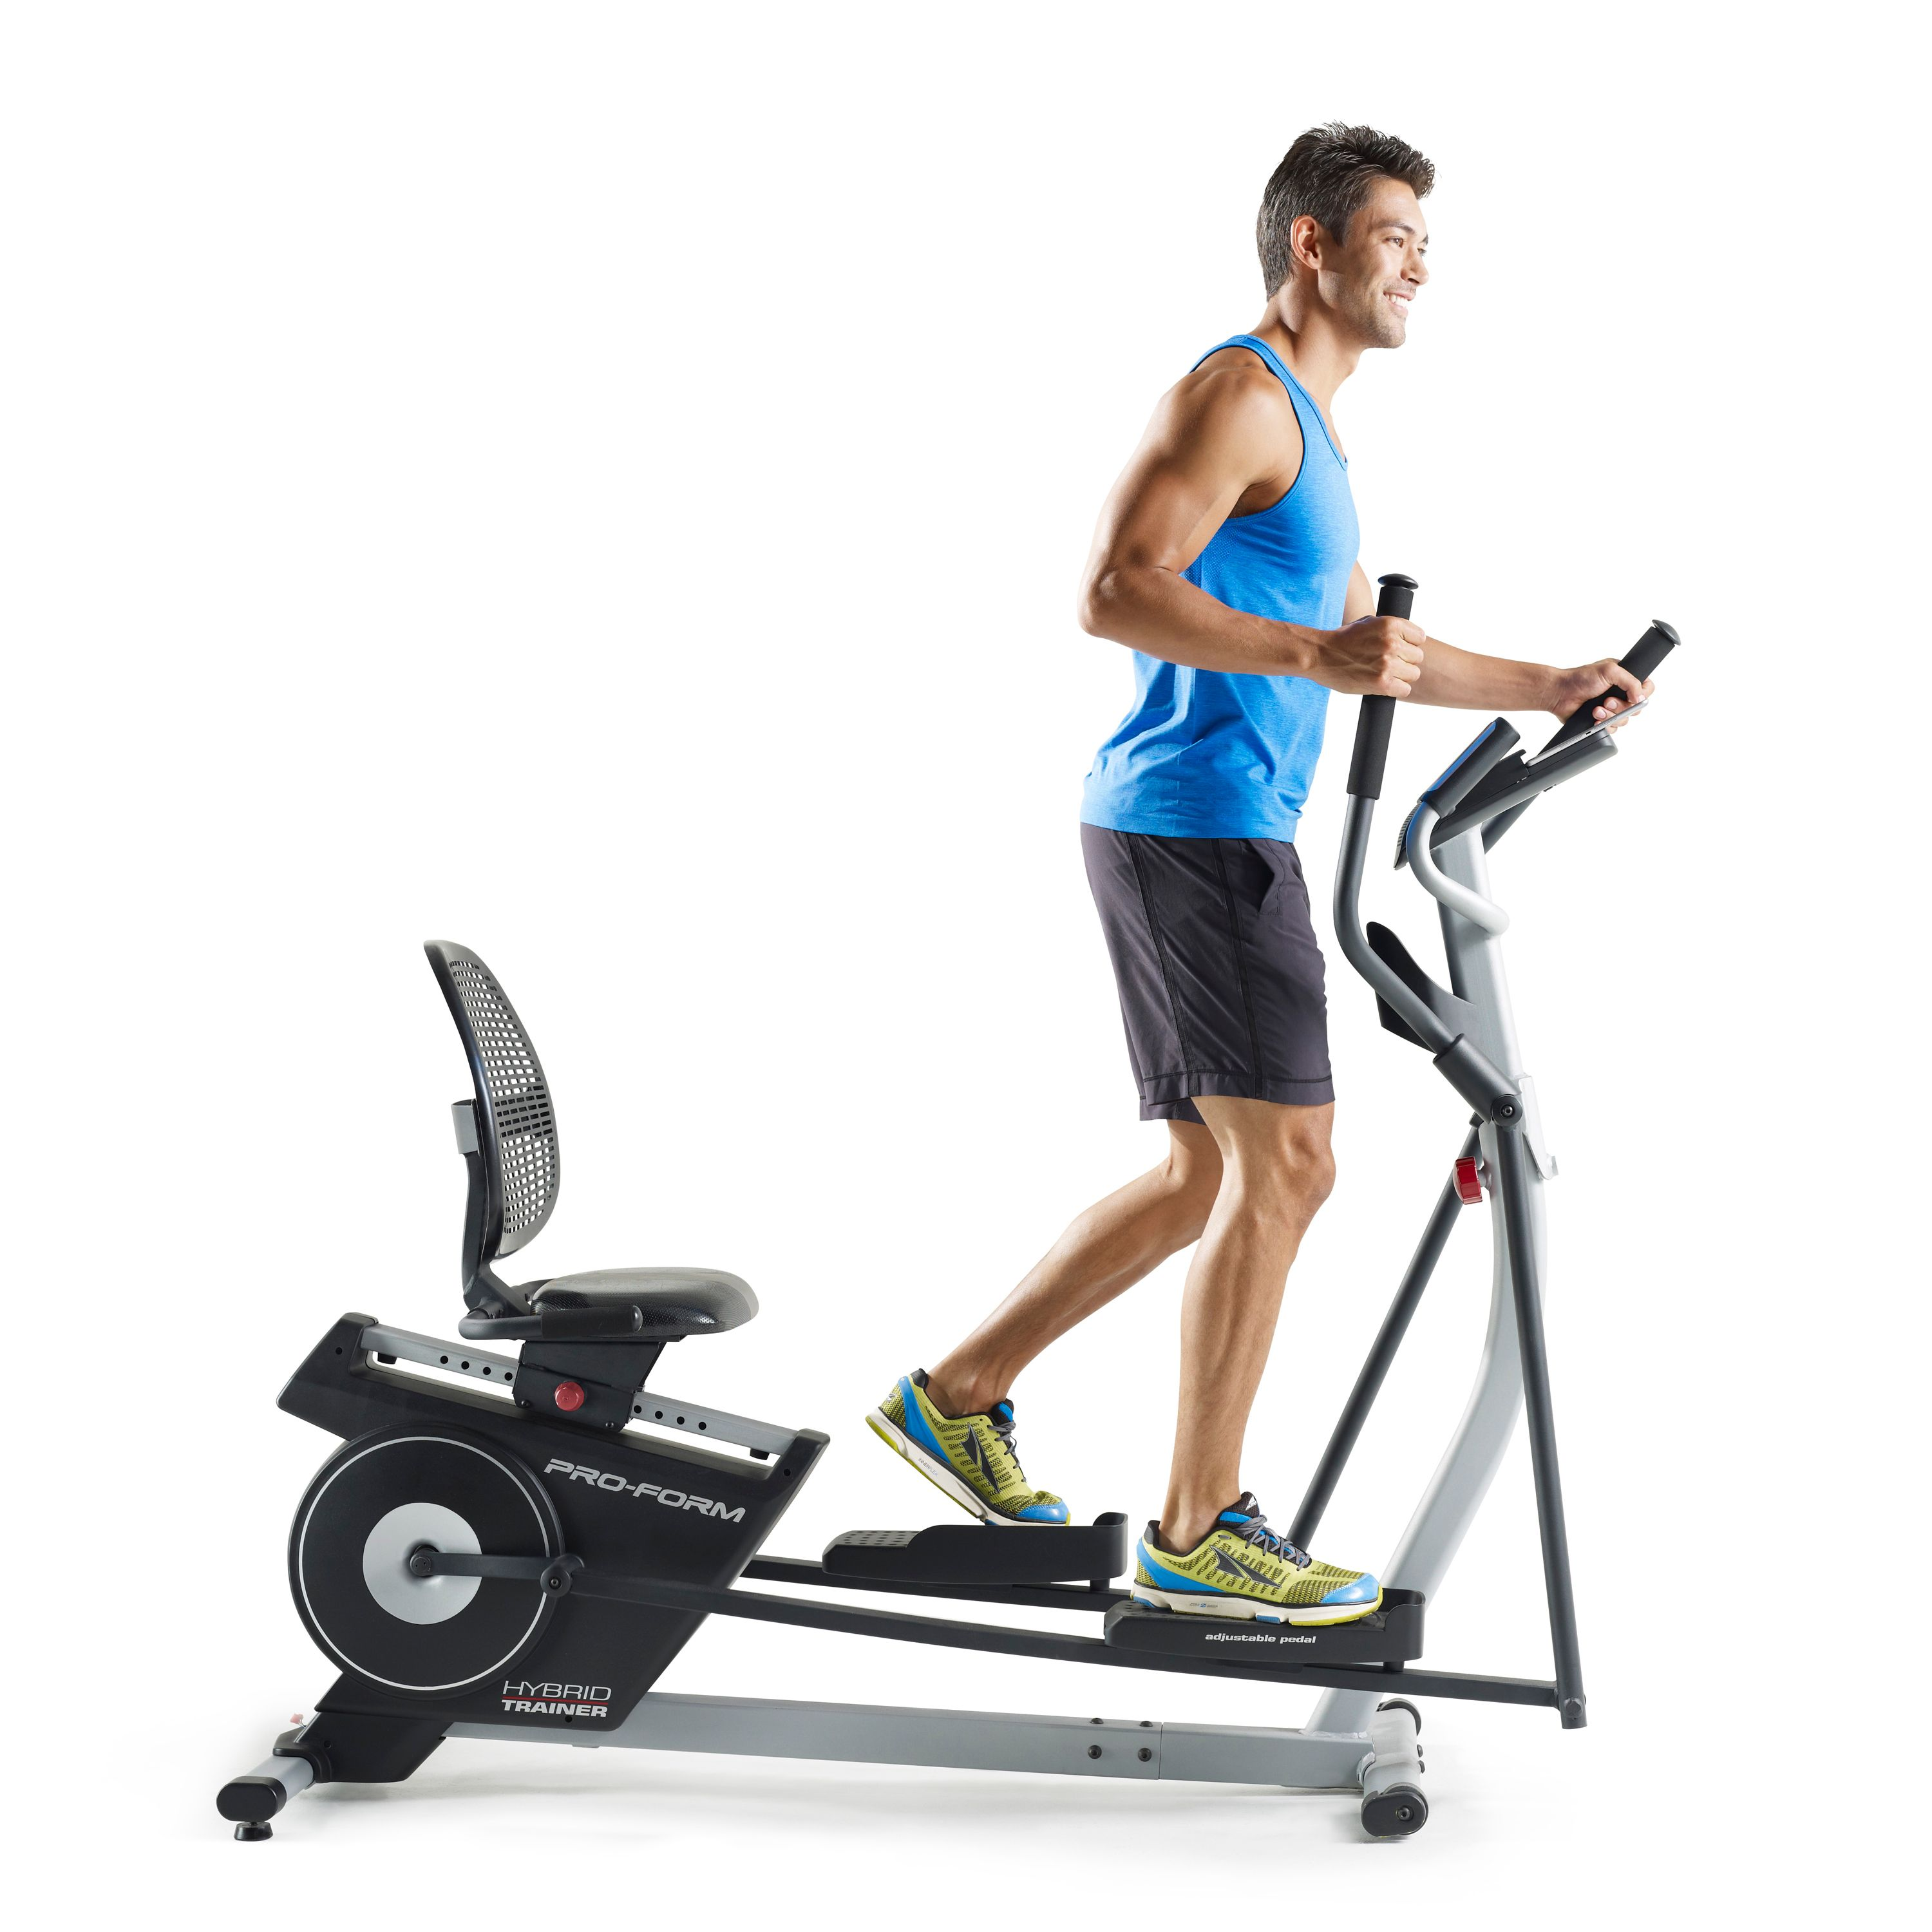 When You Want To Up Your Workout Simply Stand From The Seated Position Transition Hybrid Trainer S Elliptical Machine